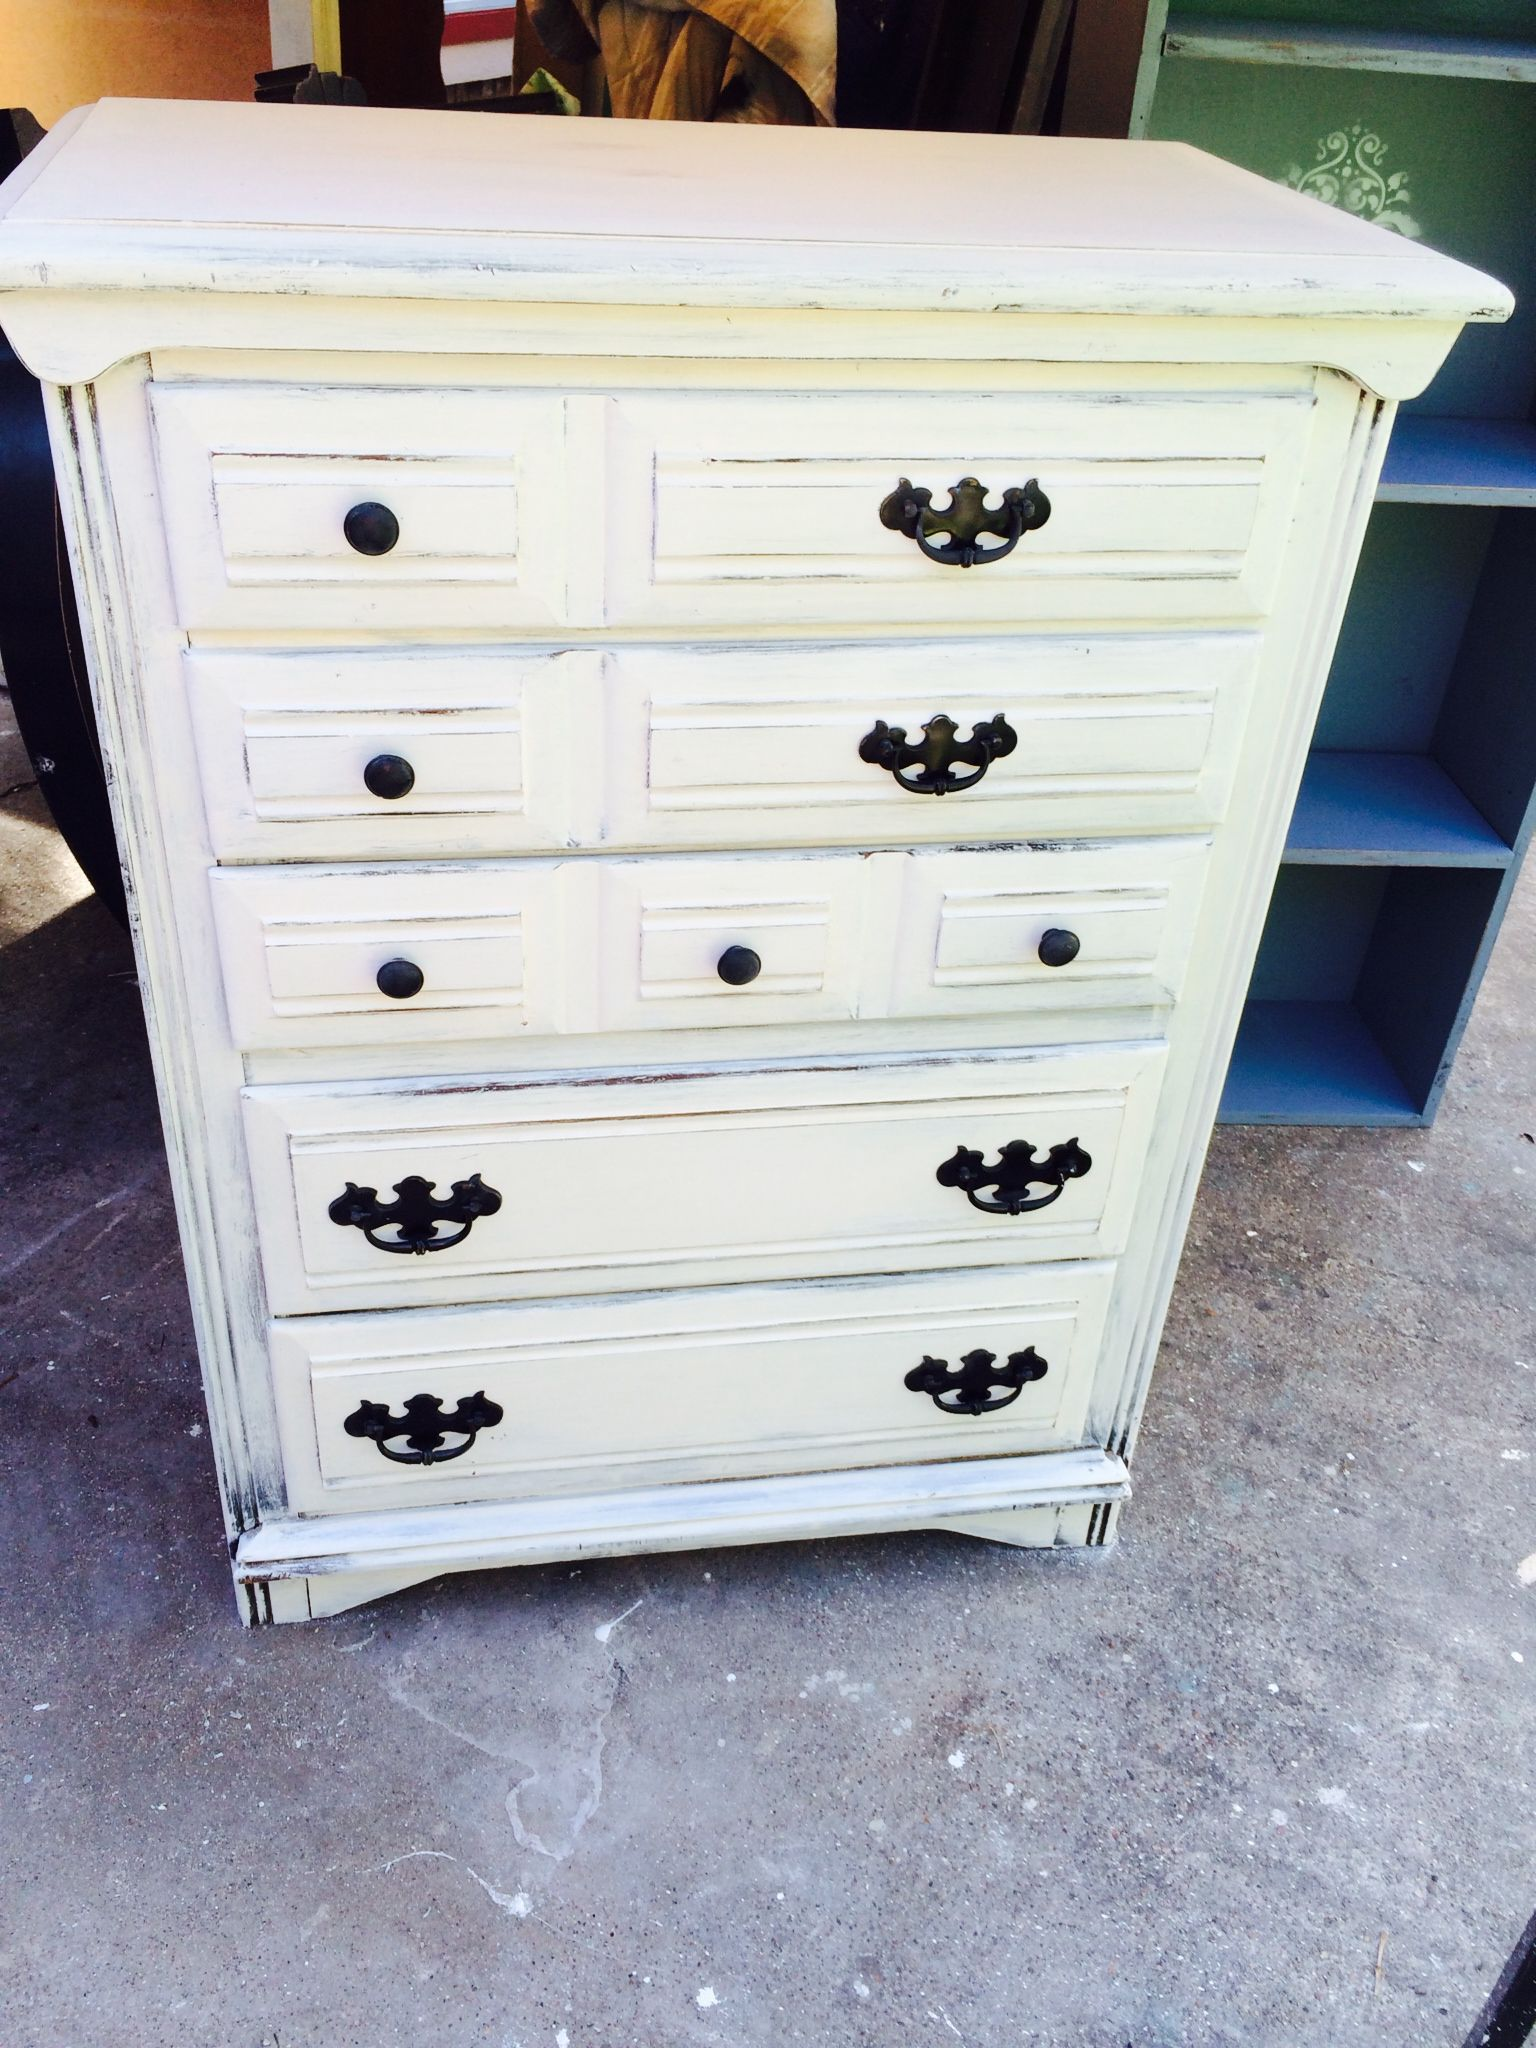 This is a white washed shabby chic chest of drawers that is that I